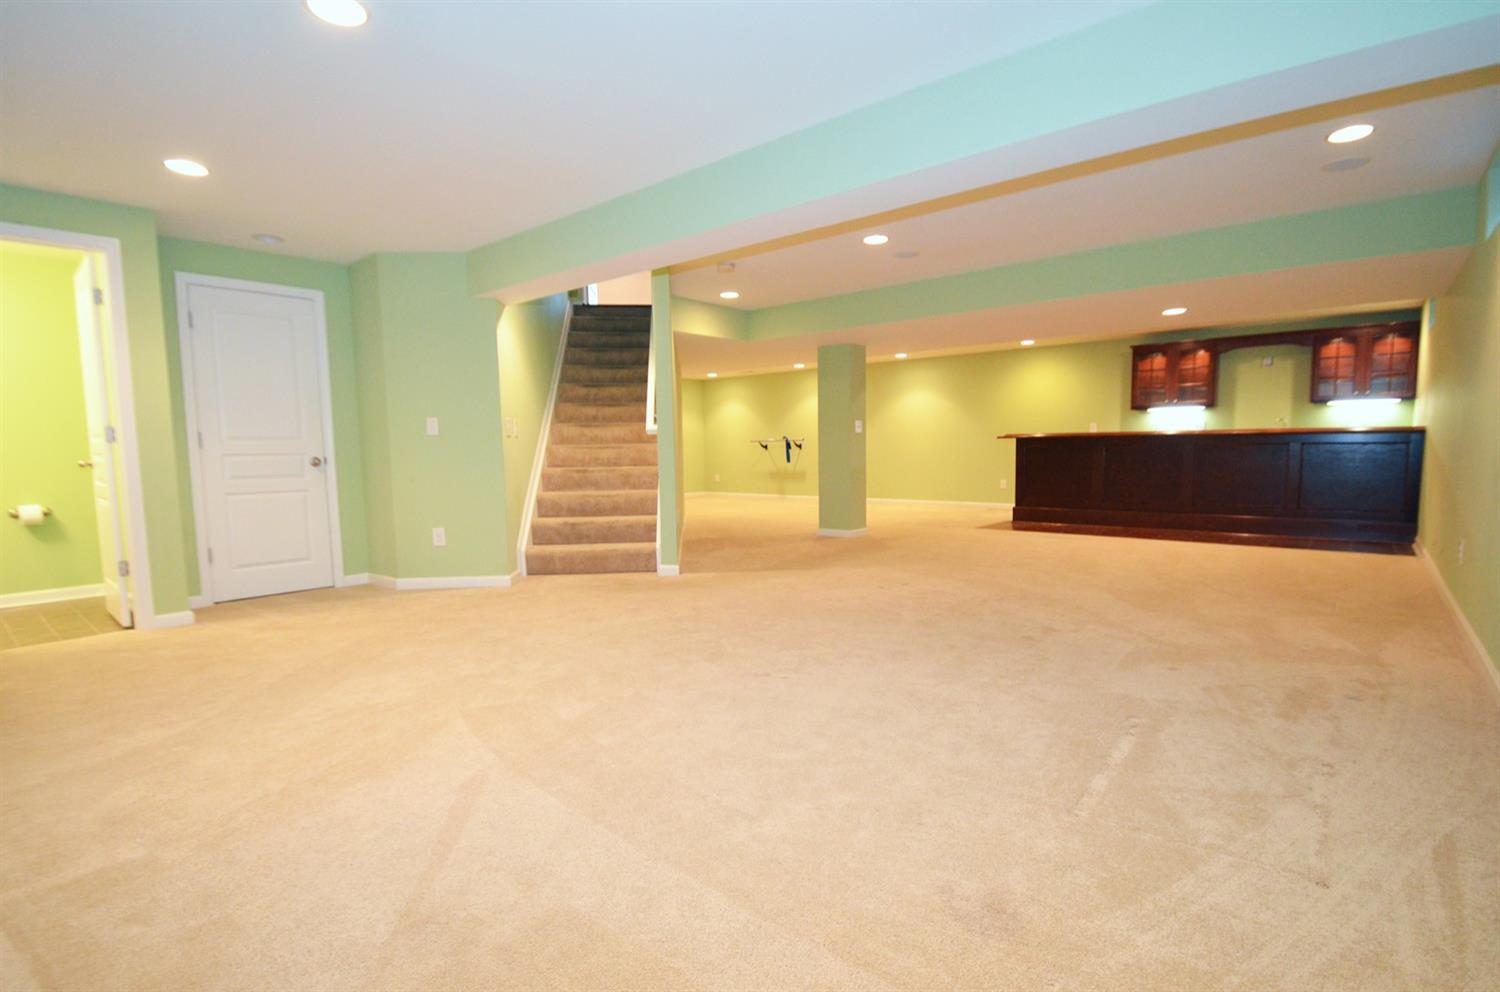 Wow! What a large lower level rec room and game/entertaining space complete the wet bar and half bath. The L-shaped space easily accommodates a media area, bar area and space for games